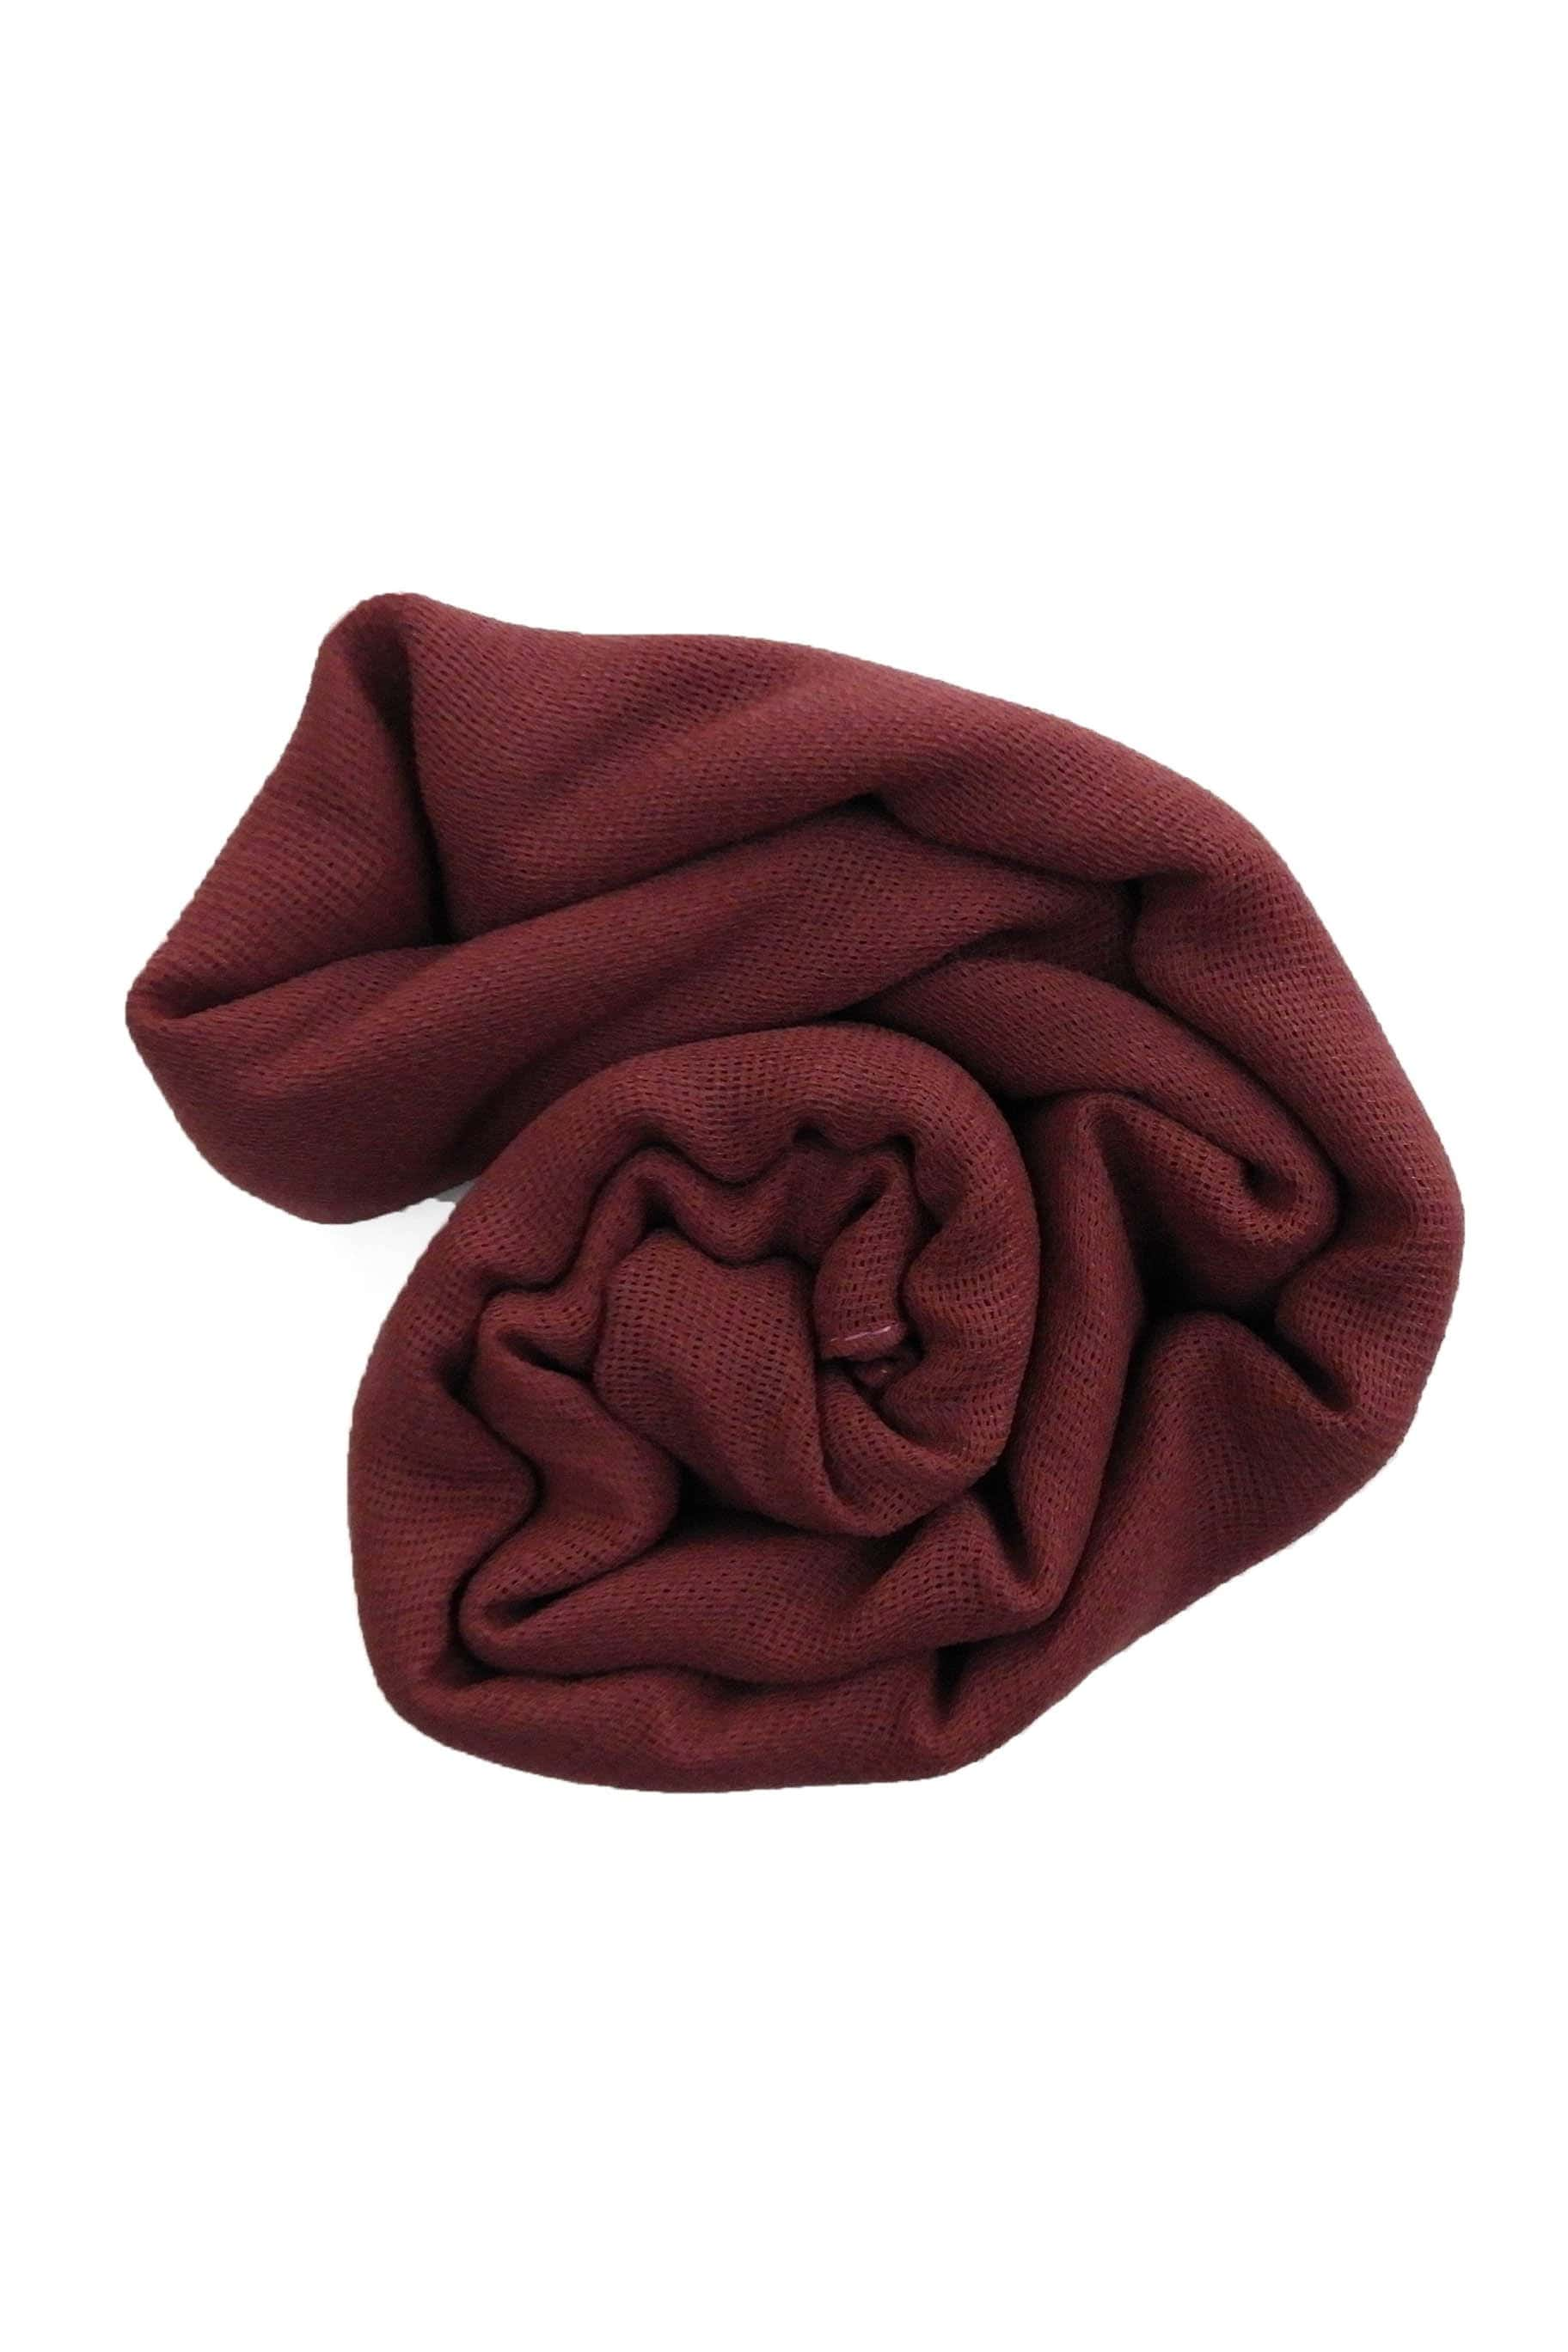 Autumn Red-Brown Jute Cotton - Jute-Cotton Hijab - The Modest Look